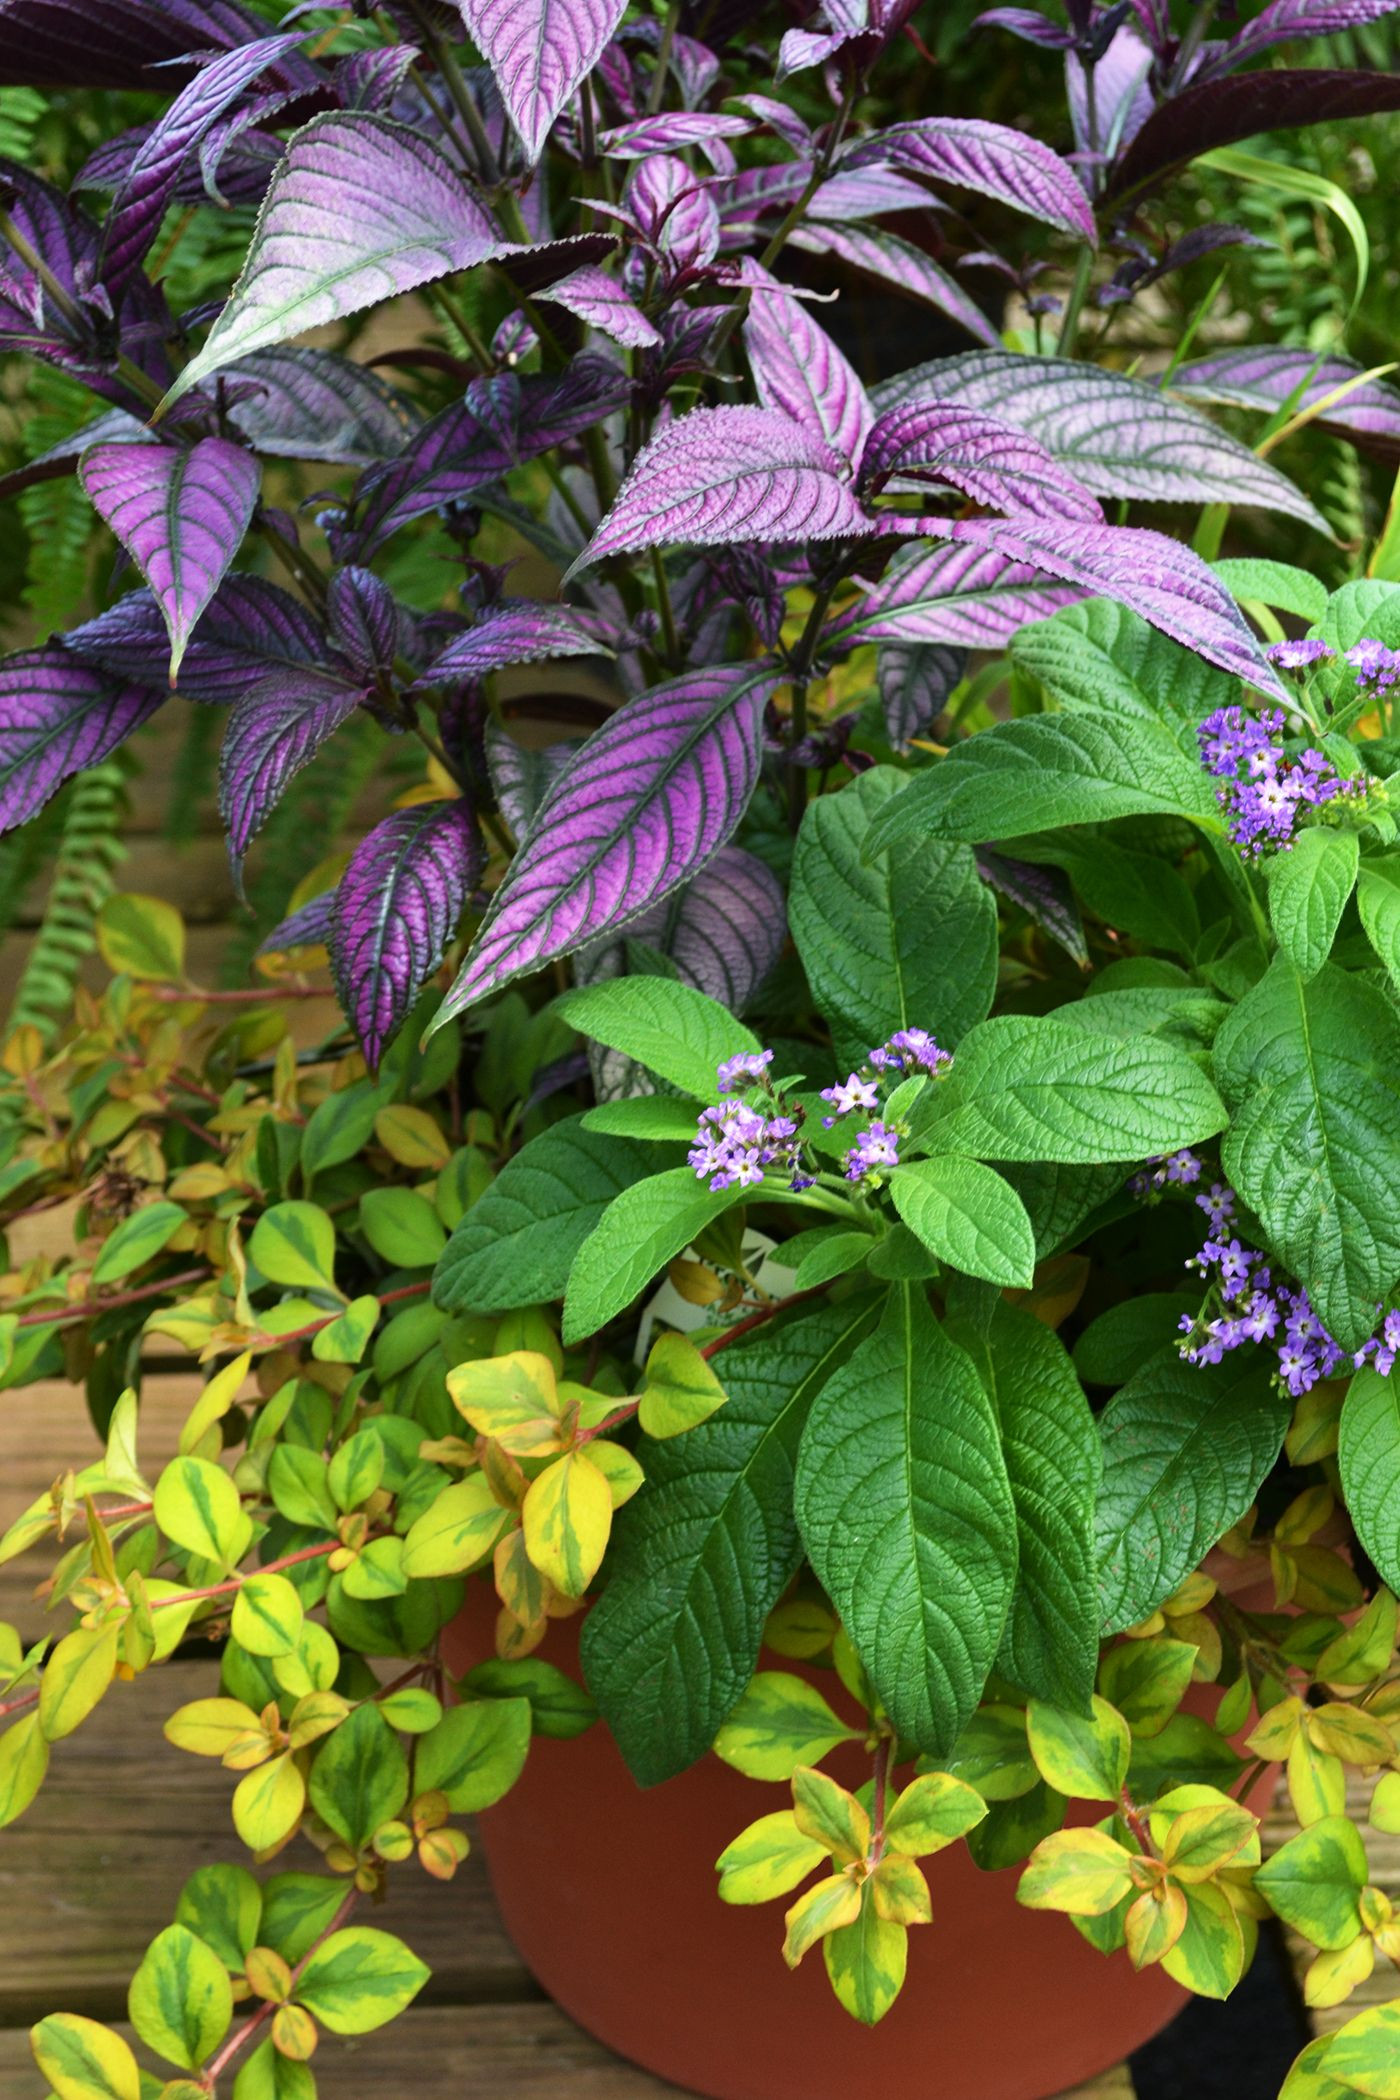 The iridescent colorful purple and silver leaves of Persian Shield add a burst of color against fillers heliotrope and ornamental grass